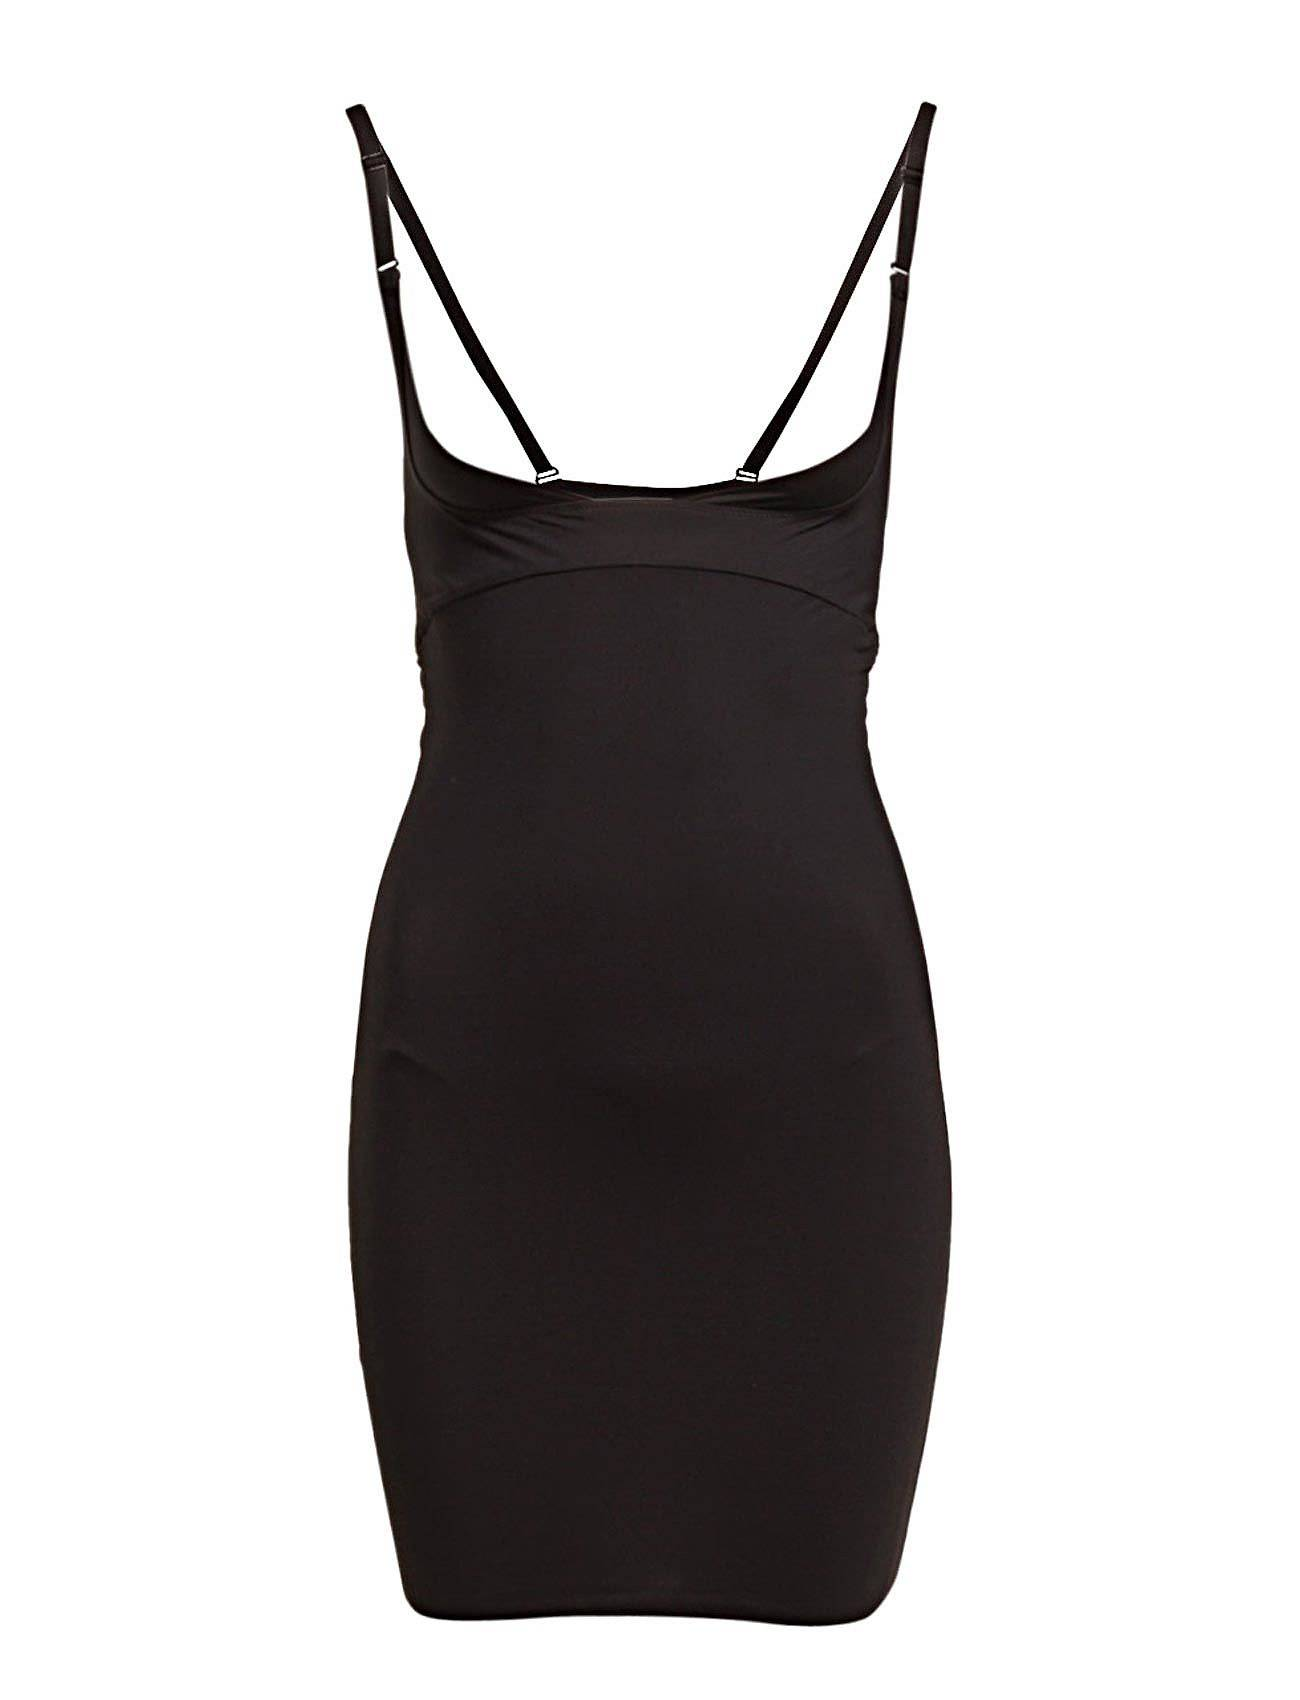 Maidenform Take Inches Off Lingerie Shapewear Tops Musta Maidenform